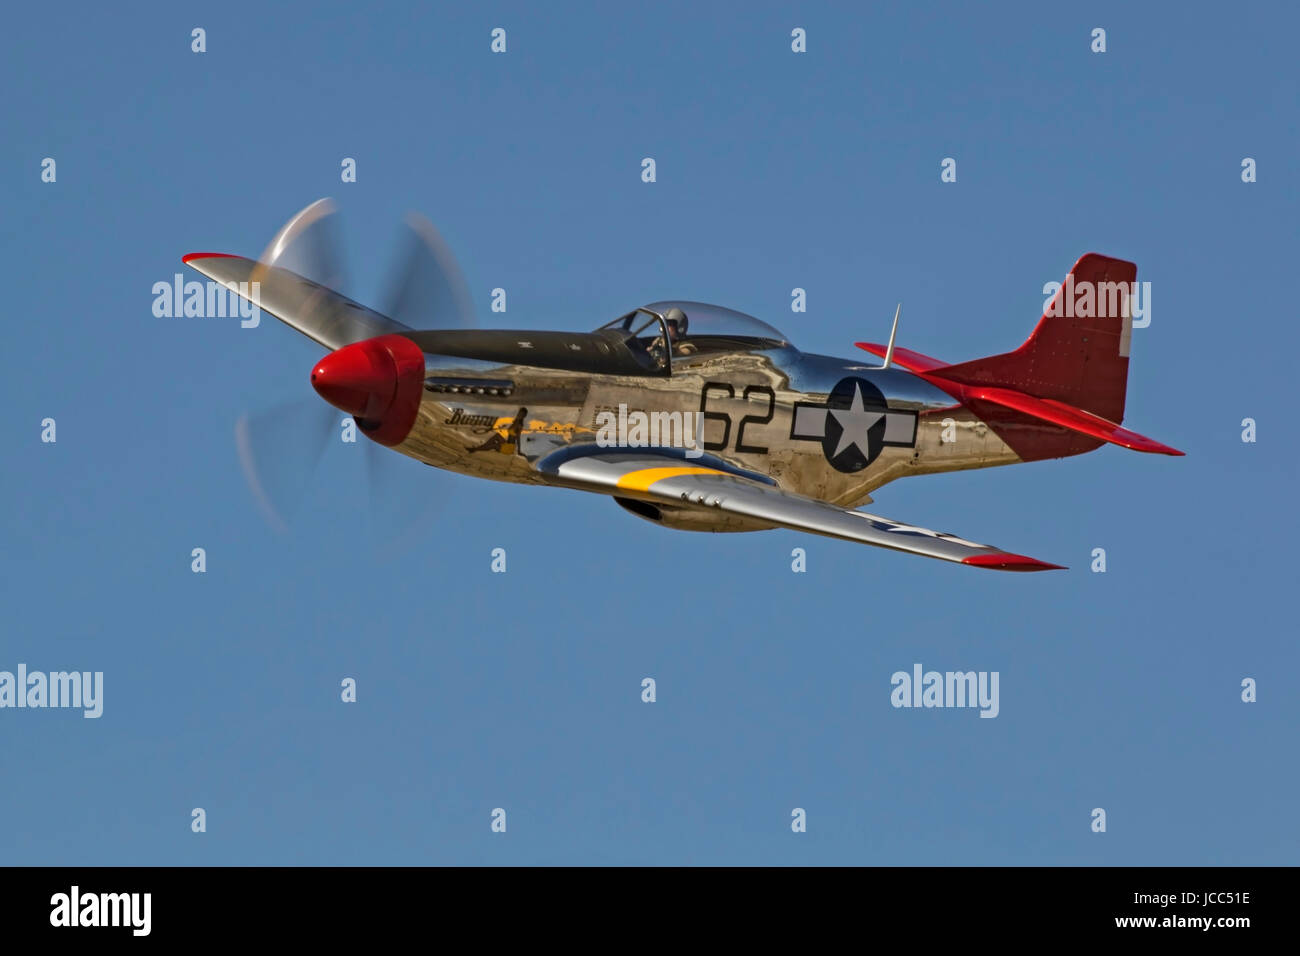 Airplane Wwii Vintage Red Tail P 51 Mustang Fighter Flying